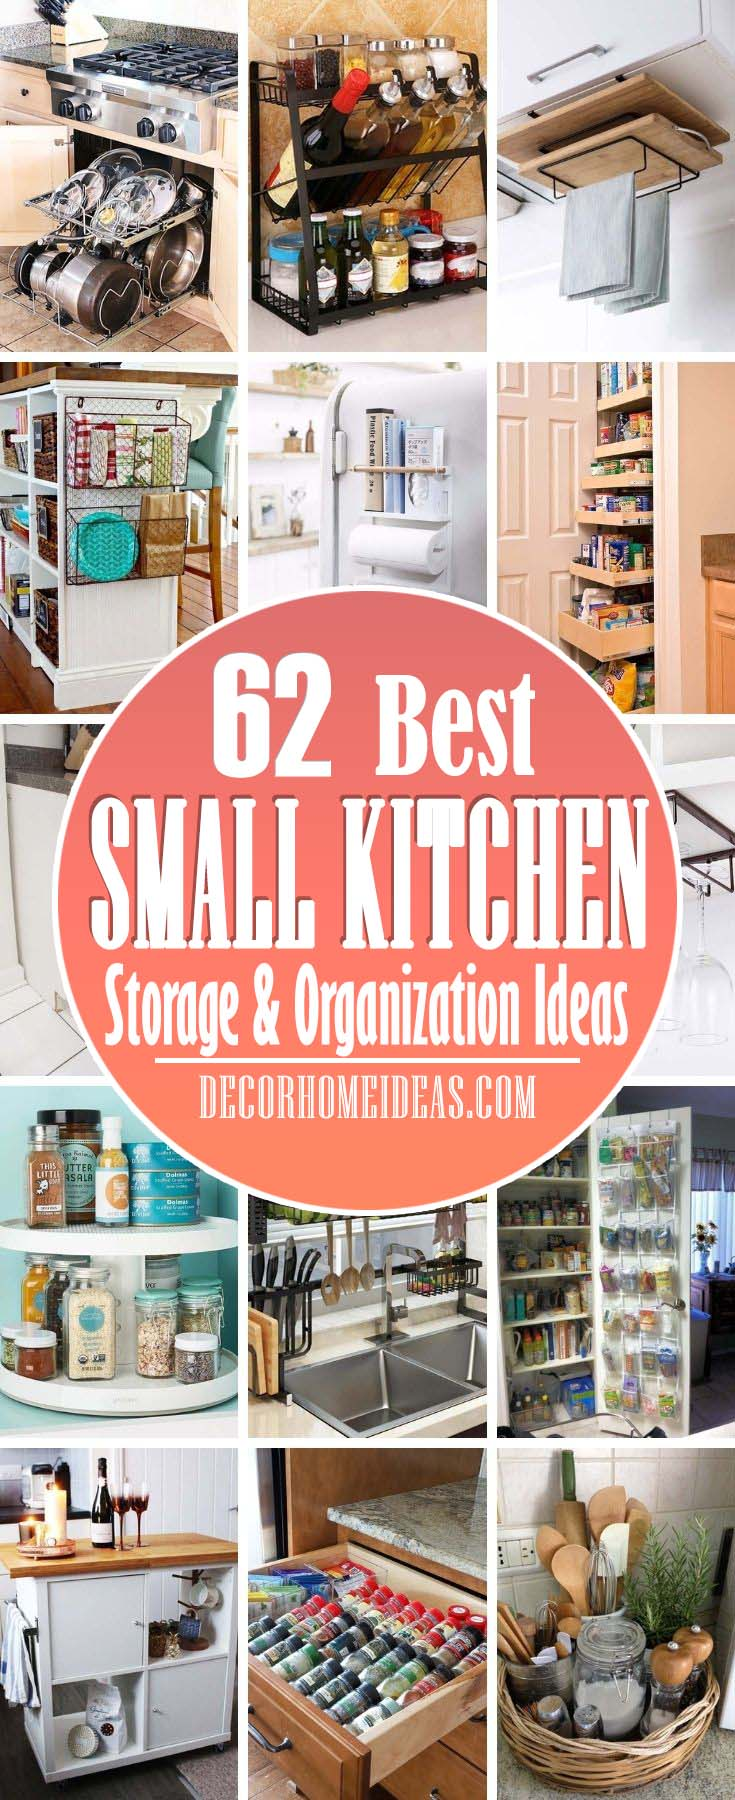 Best Small Kitchen Storage Organization Ideas. These ideas will help you make the most of the space you do have. From unique cabinetry solutions to little tricks, these ideas just might help you feel like you've doubled your kitchen's square footage. #decorhomeideas